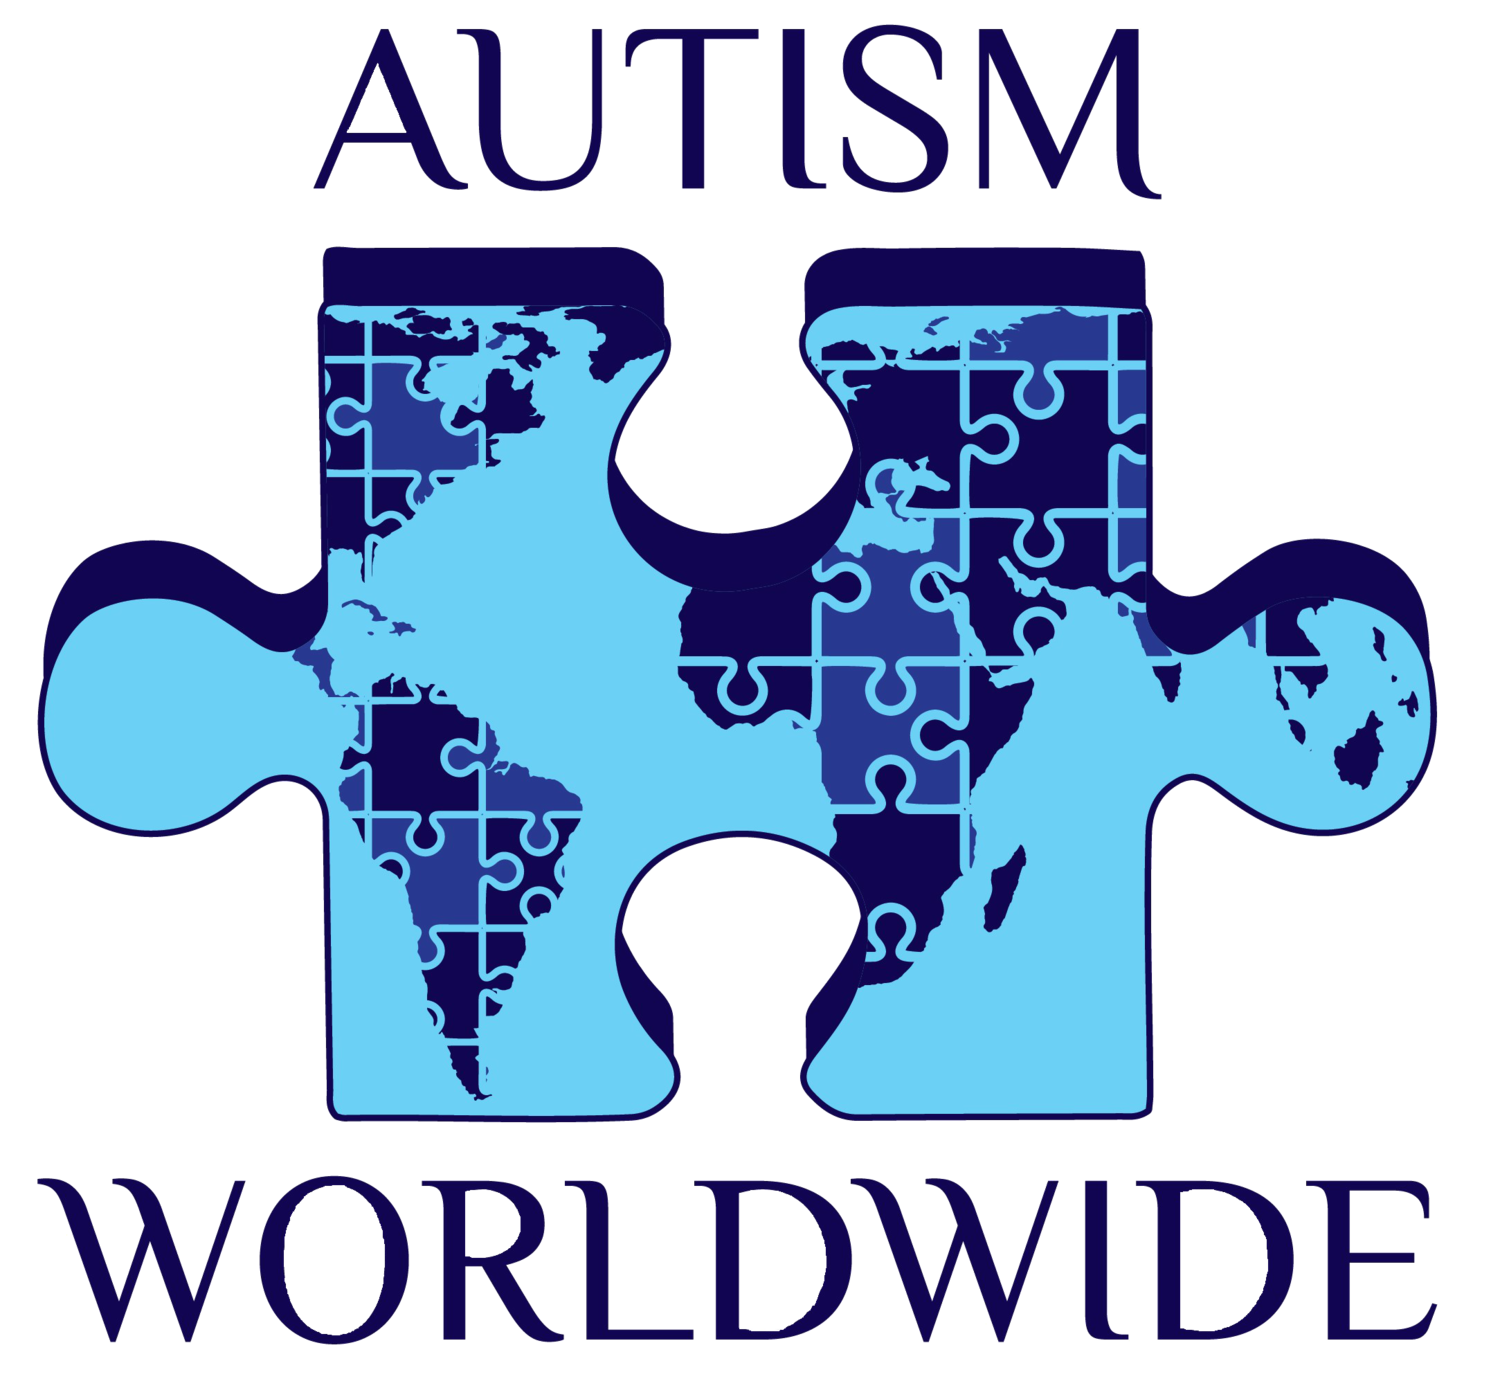 Autism Worldwide